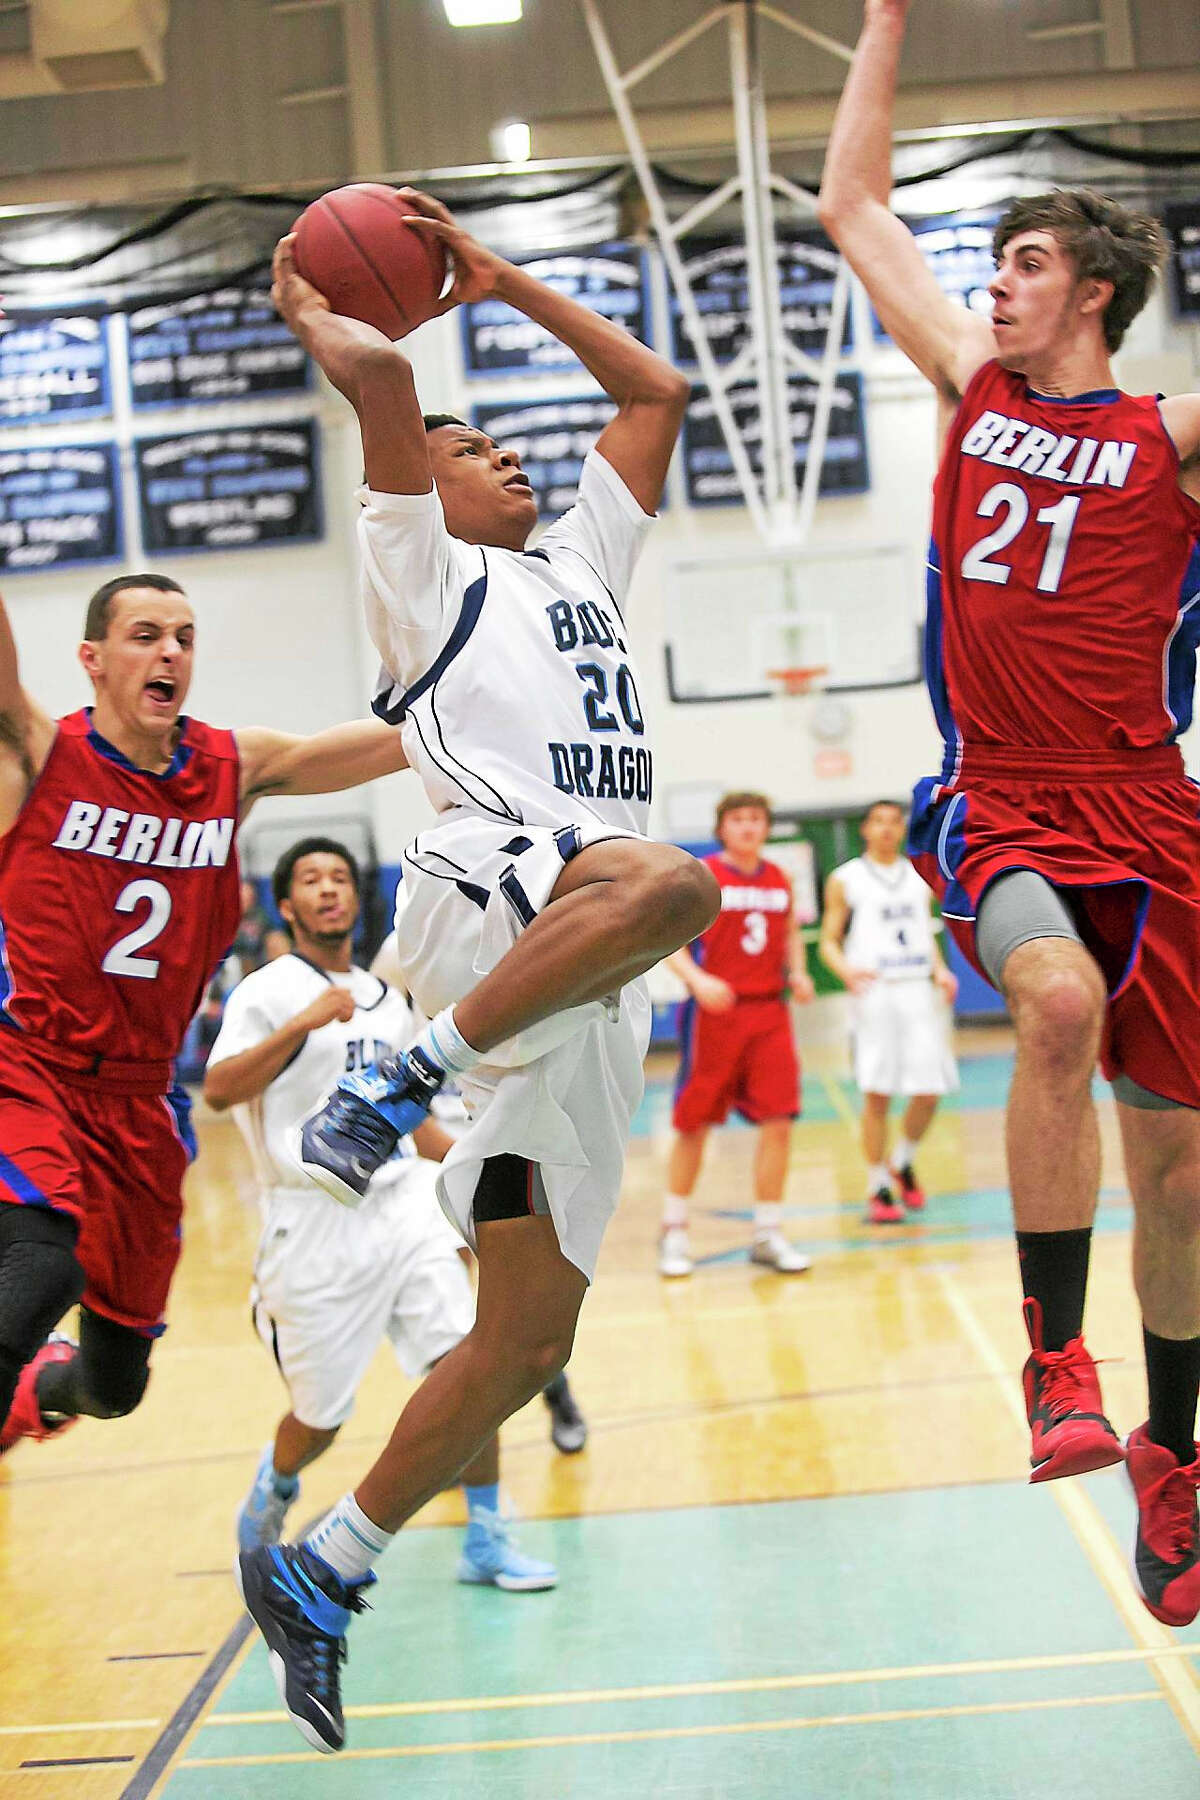 Middletown junior Tyshaun James (20) is part of a strong core of returning letterwinners for the Blue Dragons in 2015-16. Middletown opens with Weaver at Trinity College on Dec. 19.